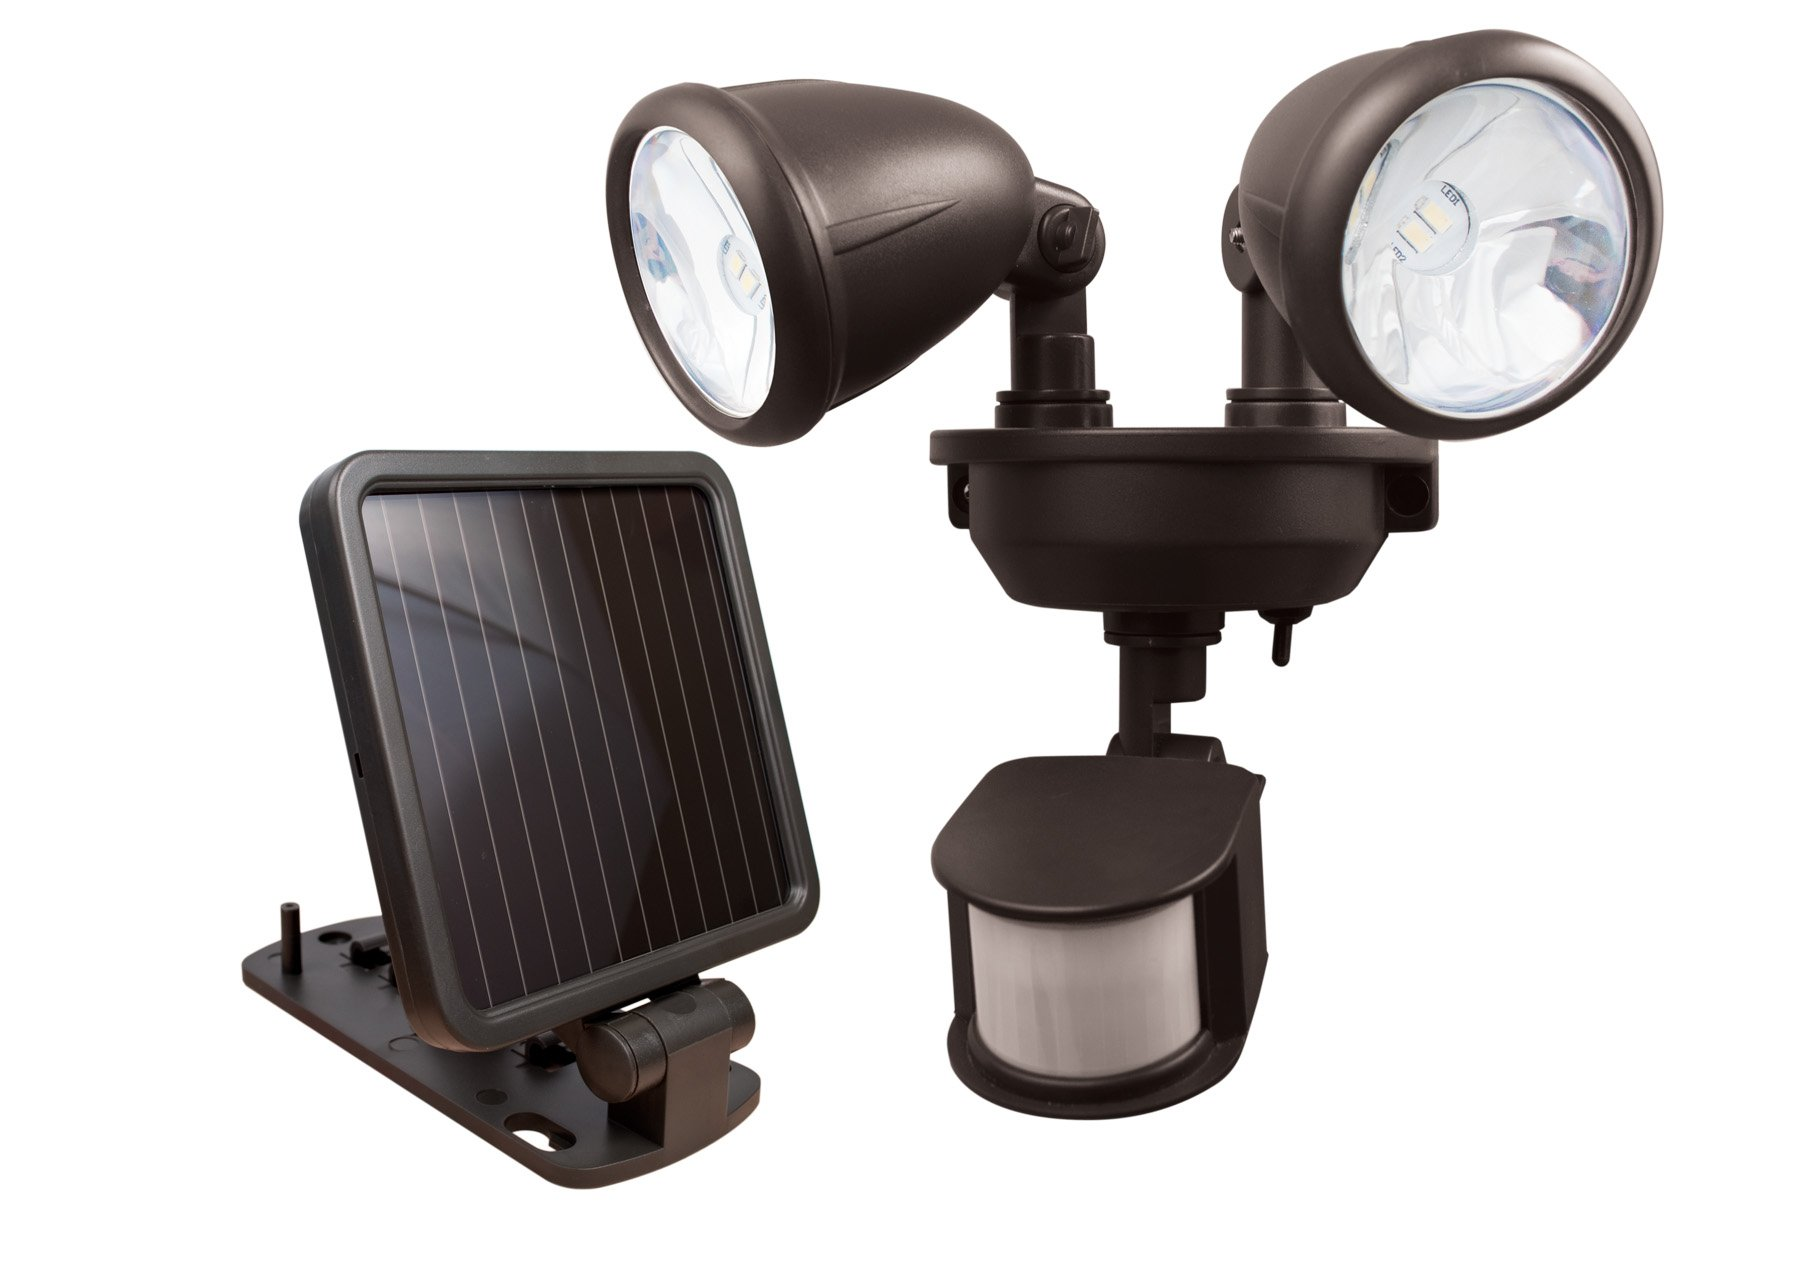 MAXSA Solar-Powered LED Dual-Head Motion Activated Security Lights for Porches, Sheds, Patios, & Barns, Dark Bronze 44216 by Maxsa